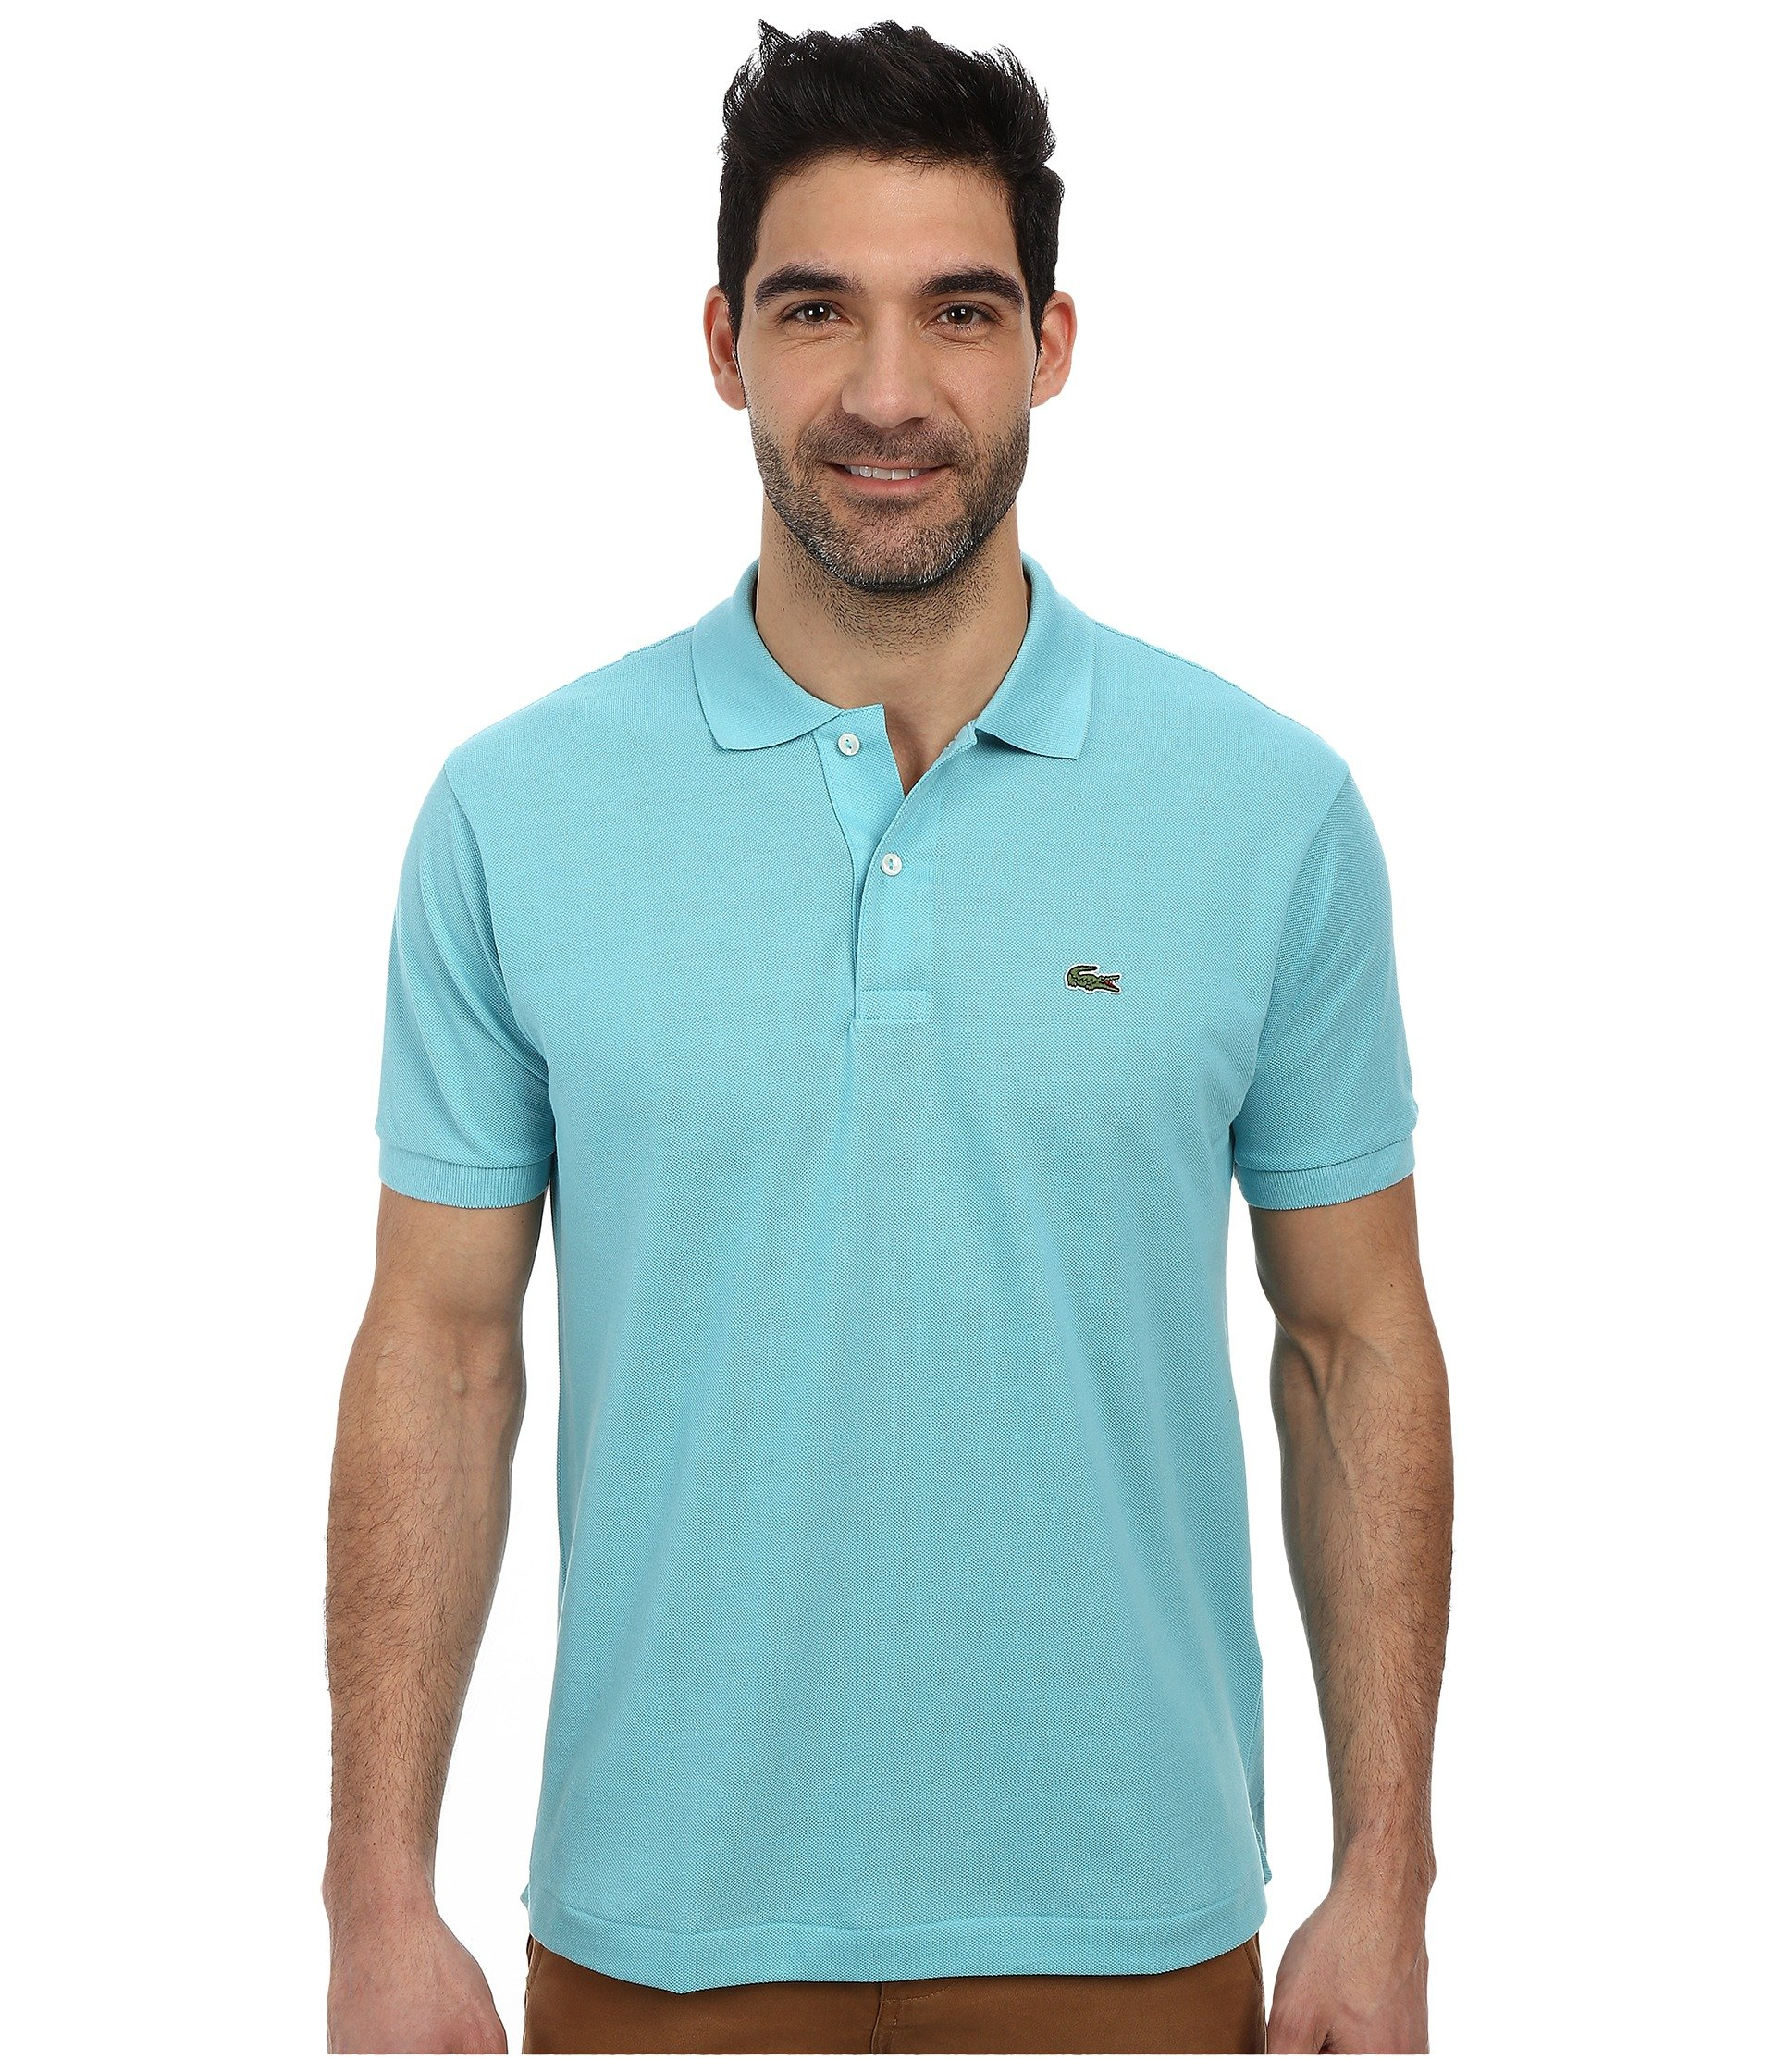 100aa6dd Lacoste Striped Polo Shirts Sale – EDGE Engineering and Consulting ...